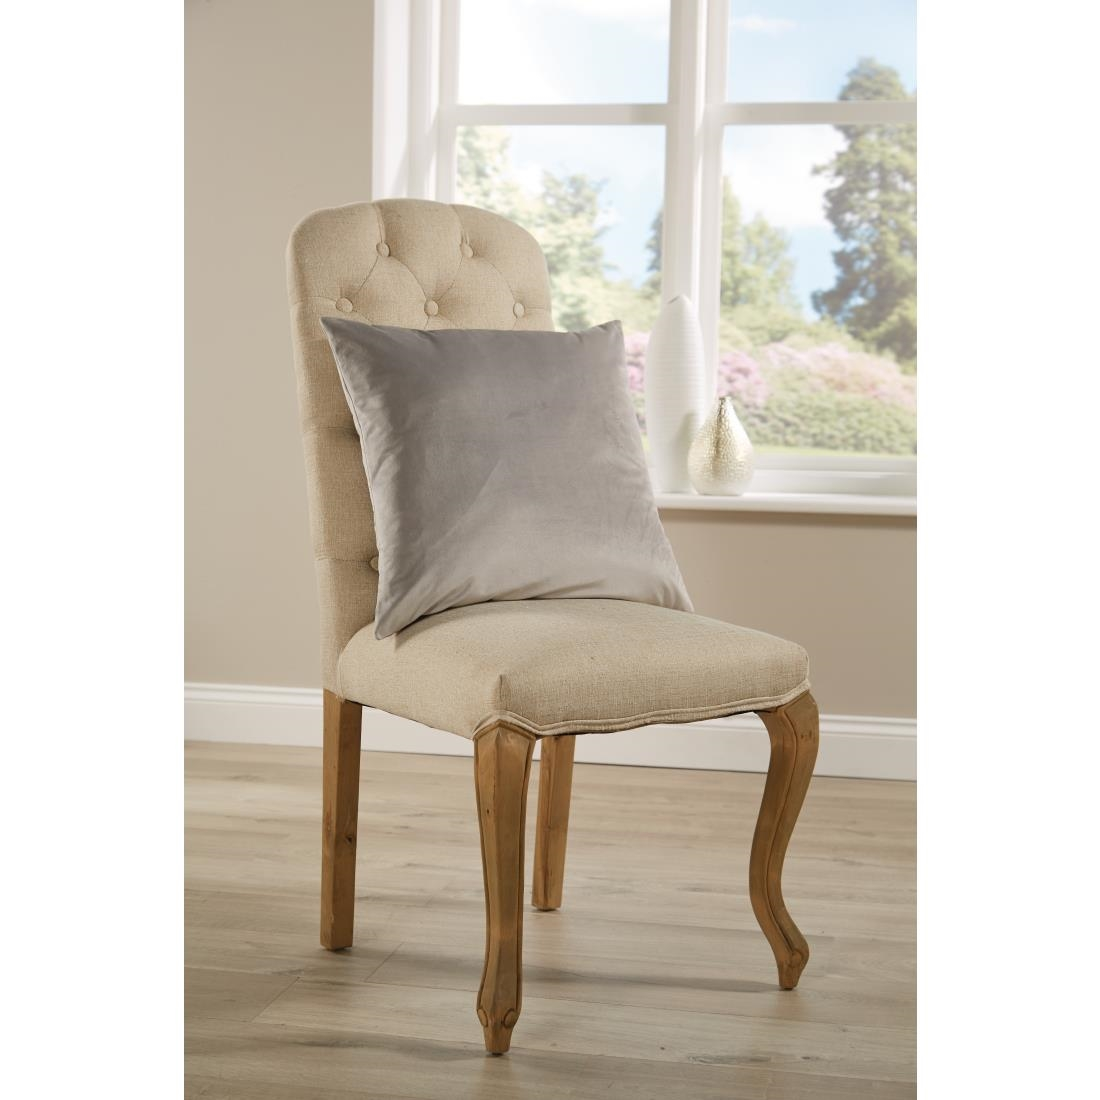 Image of Mitre Comfort DArcy Unpiped Cushion Silver